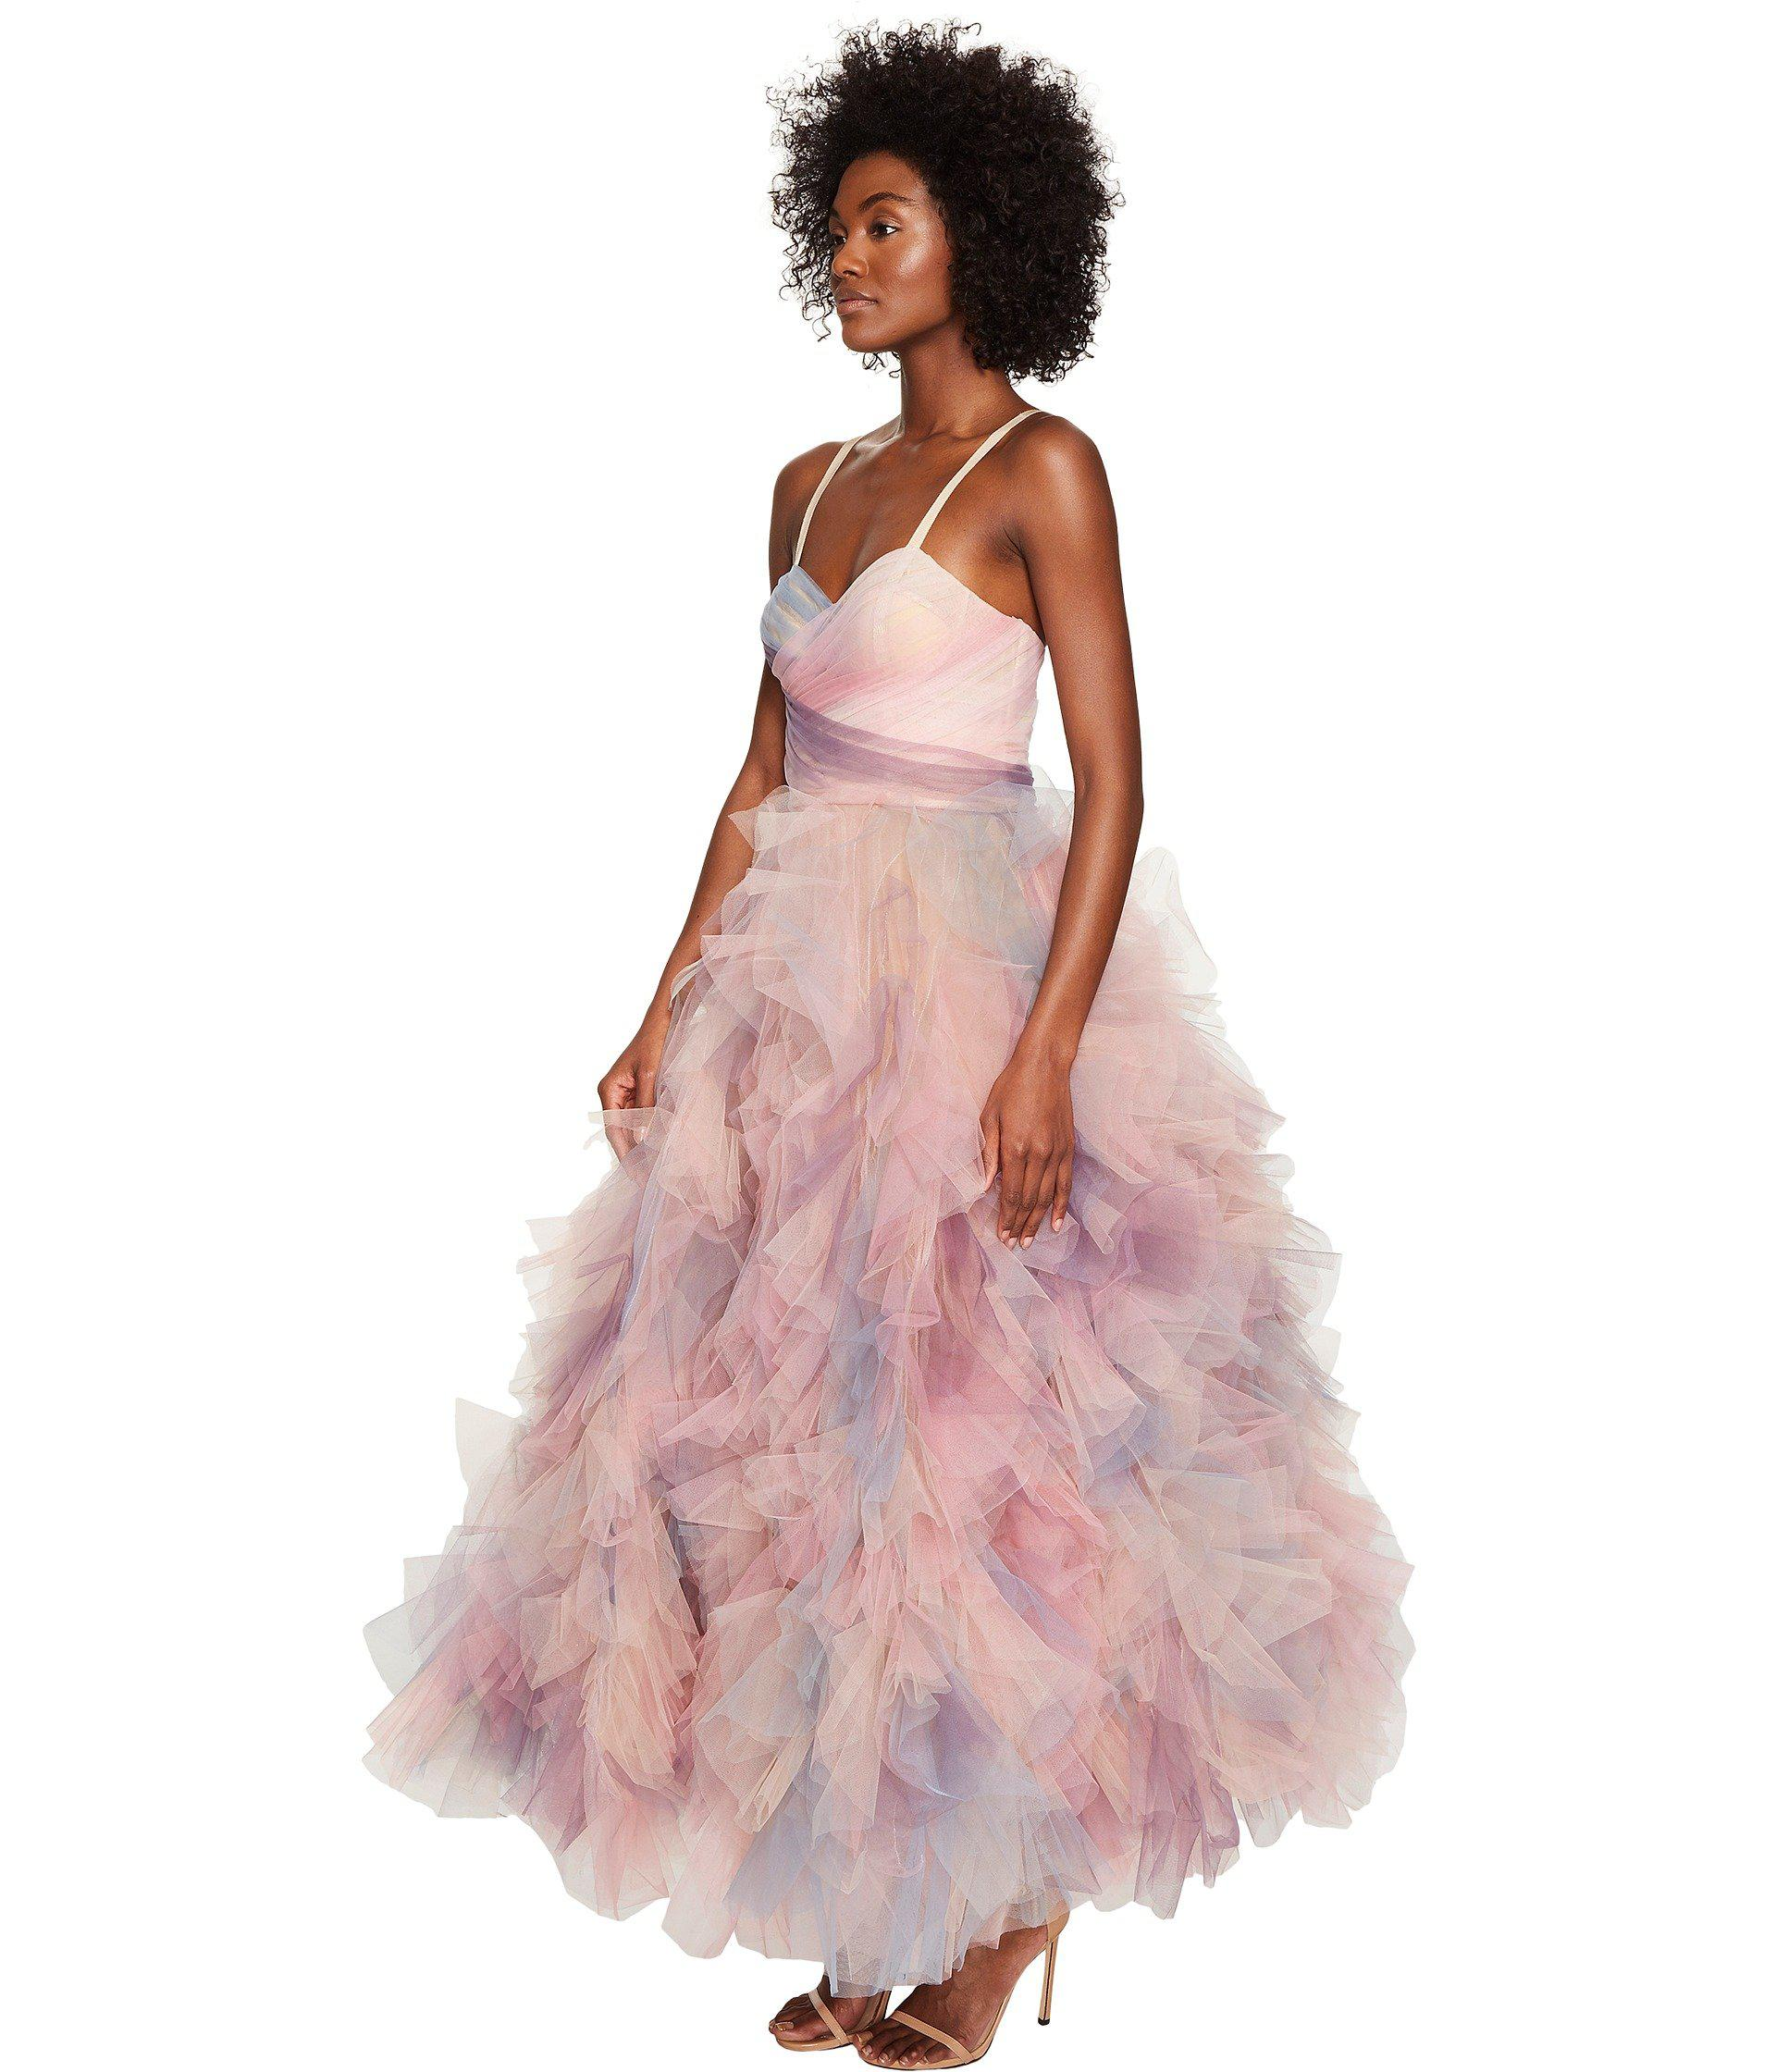 1c8c5ac1 Marchesa Pastel Tulle Ruffles W/ Corseted Bodice Cocktail Dress in ...